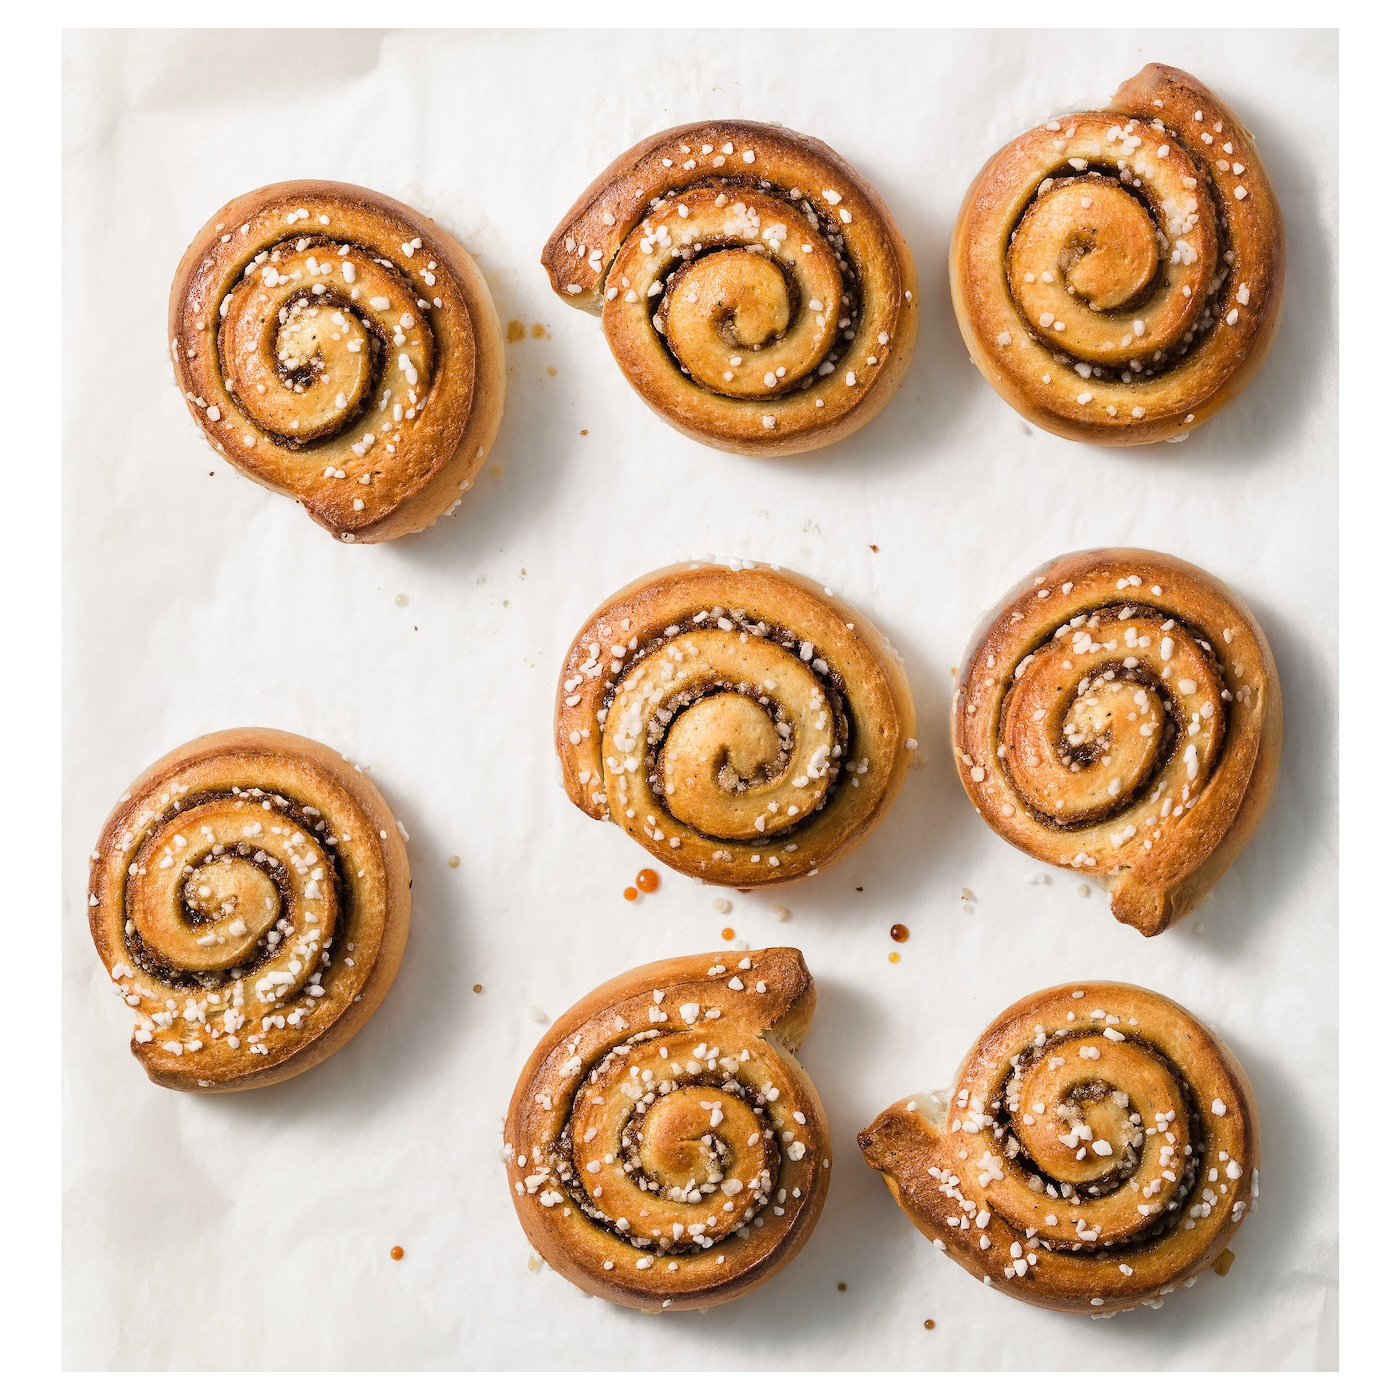 IKEA KANELBULLAR ready to bake cinnamon bun, frozen